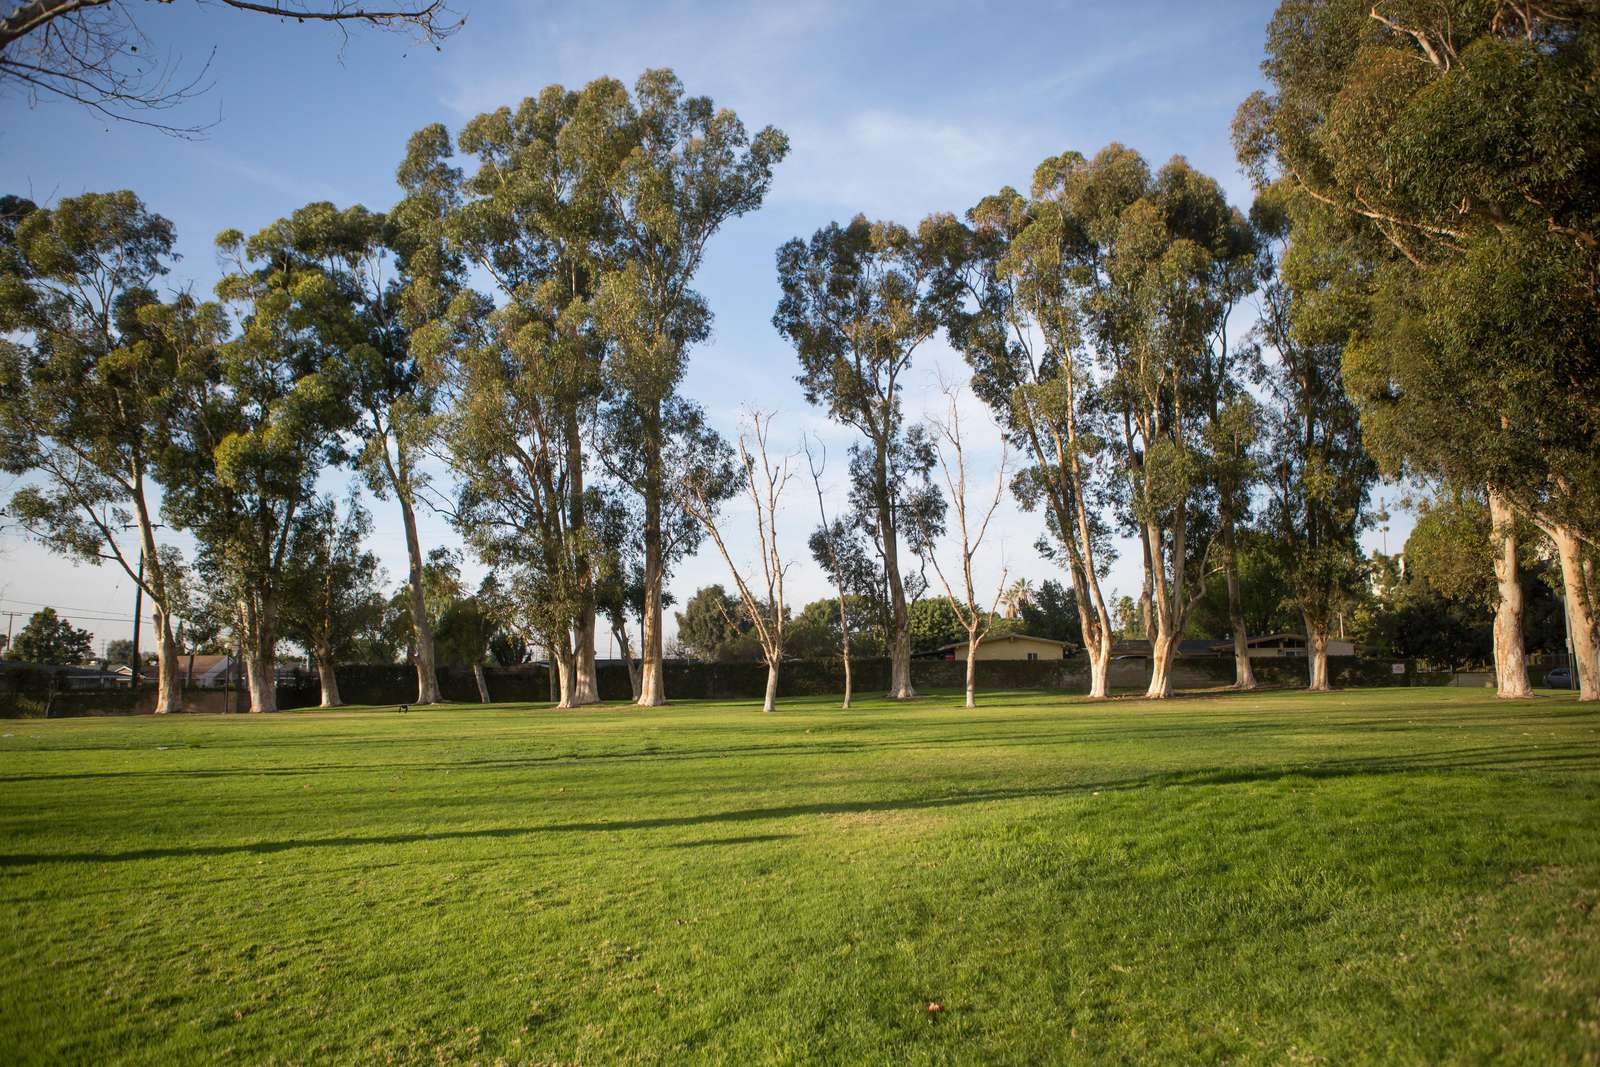 Huge Grass Area to play and stretch those legs